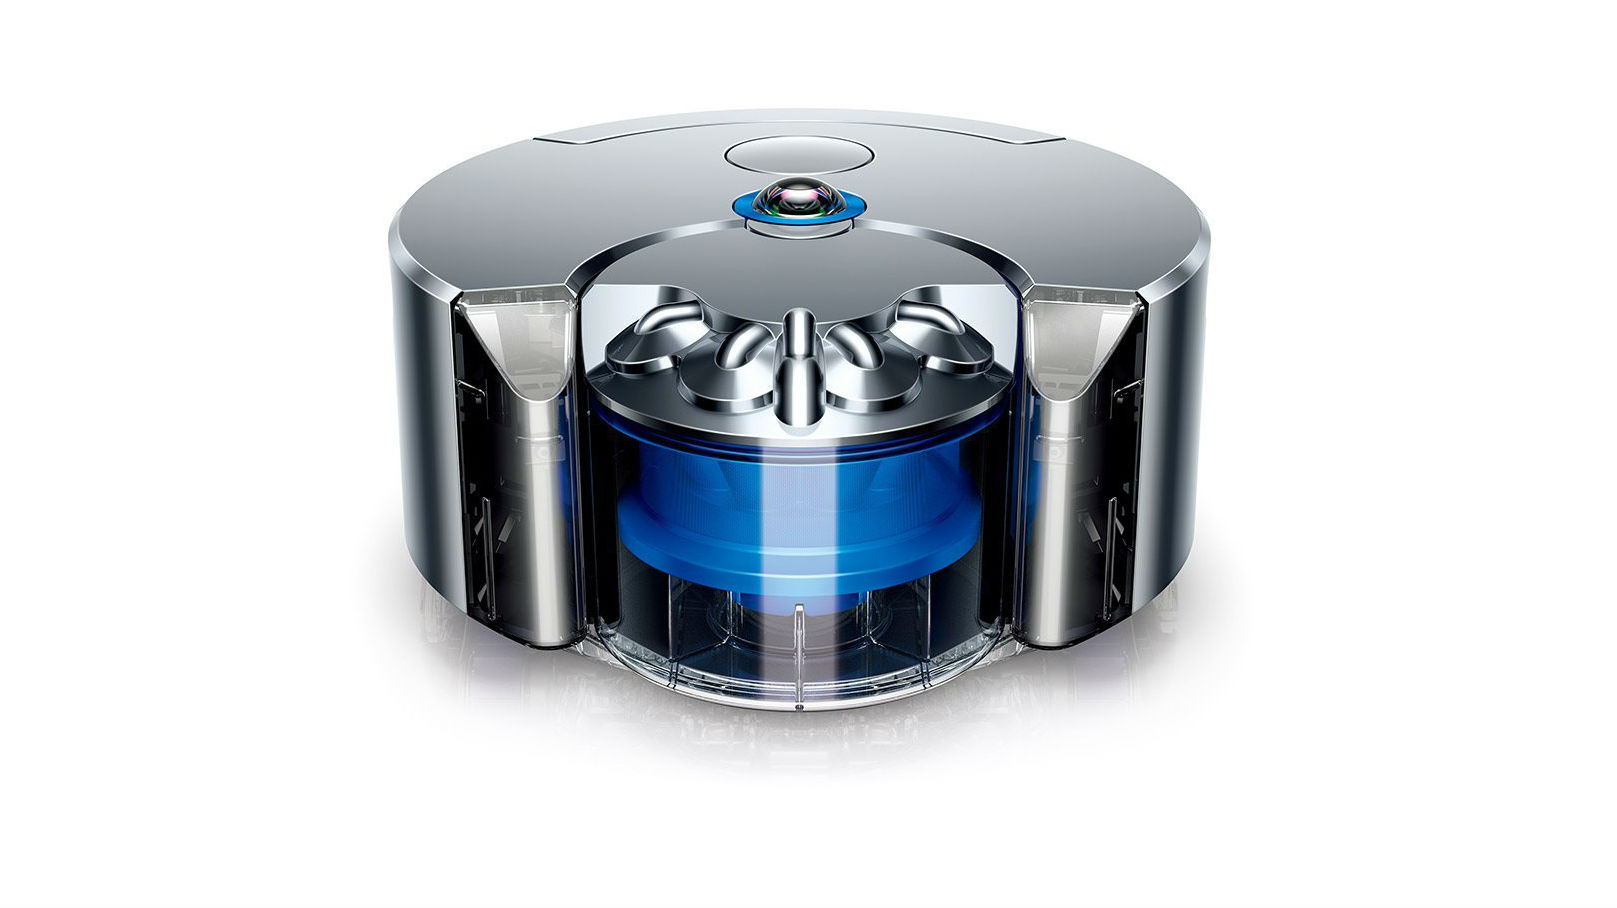 With Twice The Suction Power Of Any Other Robot Vacuum Cleaner Dyson 360 Has A Genuine Claim To Being Only One Out There That Could Replace Your